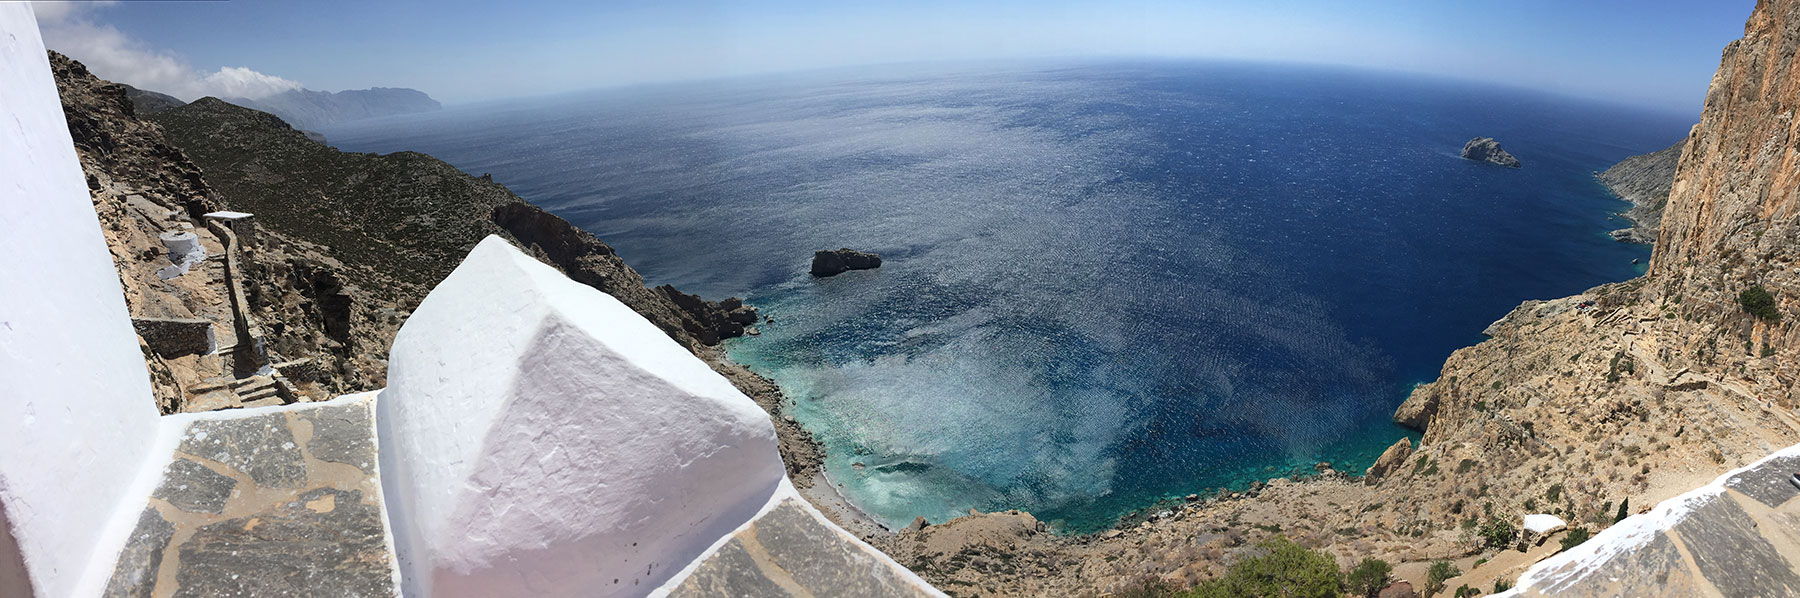 Amorgos, Greek Island, Cyclades, suggestions of places to visit; review by aunoralurra, 建議; 제안; 提案اقتراحات; forslag; suggesties; ehdotuksia; Vorschläge; προτάσεις; manaʻo kōkua; הצעות; सुझाव; javaslatok; tillögur; saran; moltaí; suggerimenti; Suggestioune; پیشنهادات; sugestie; sugestões; ਸੁਝਾਅ; sugestii; предложения; molaidhean; sugerencias; förslag; öneri;